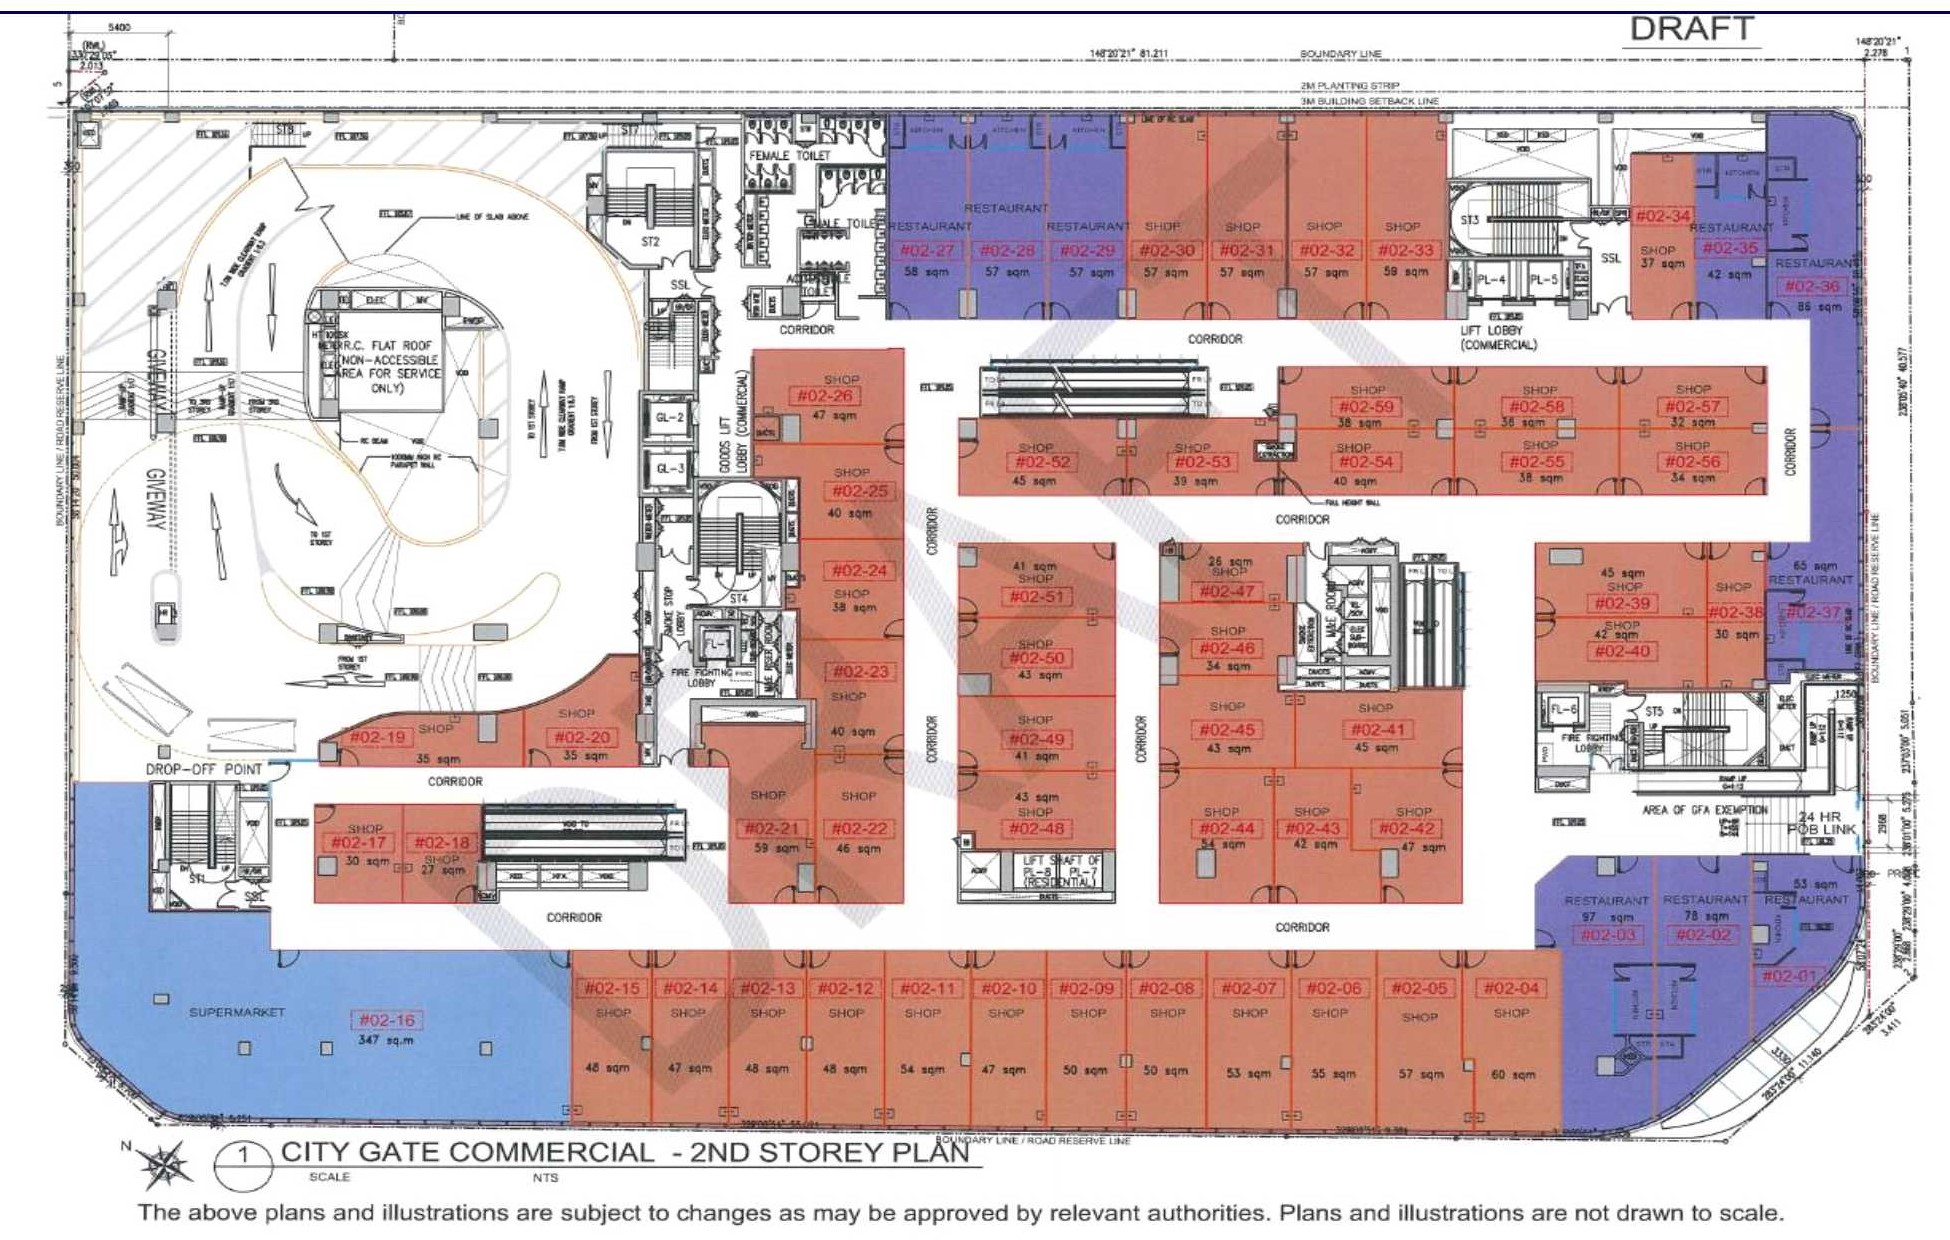 City Gate Commercial Site Plan 3